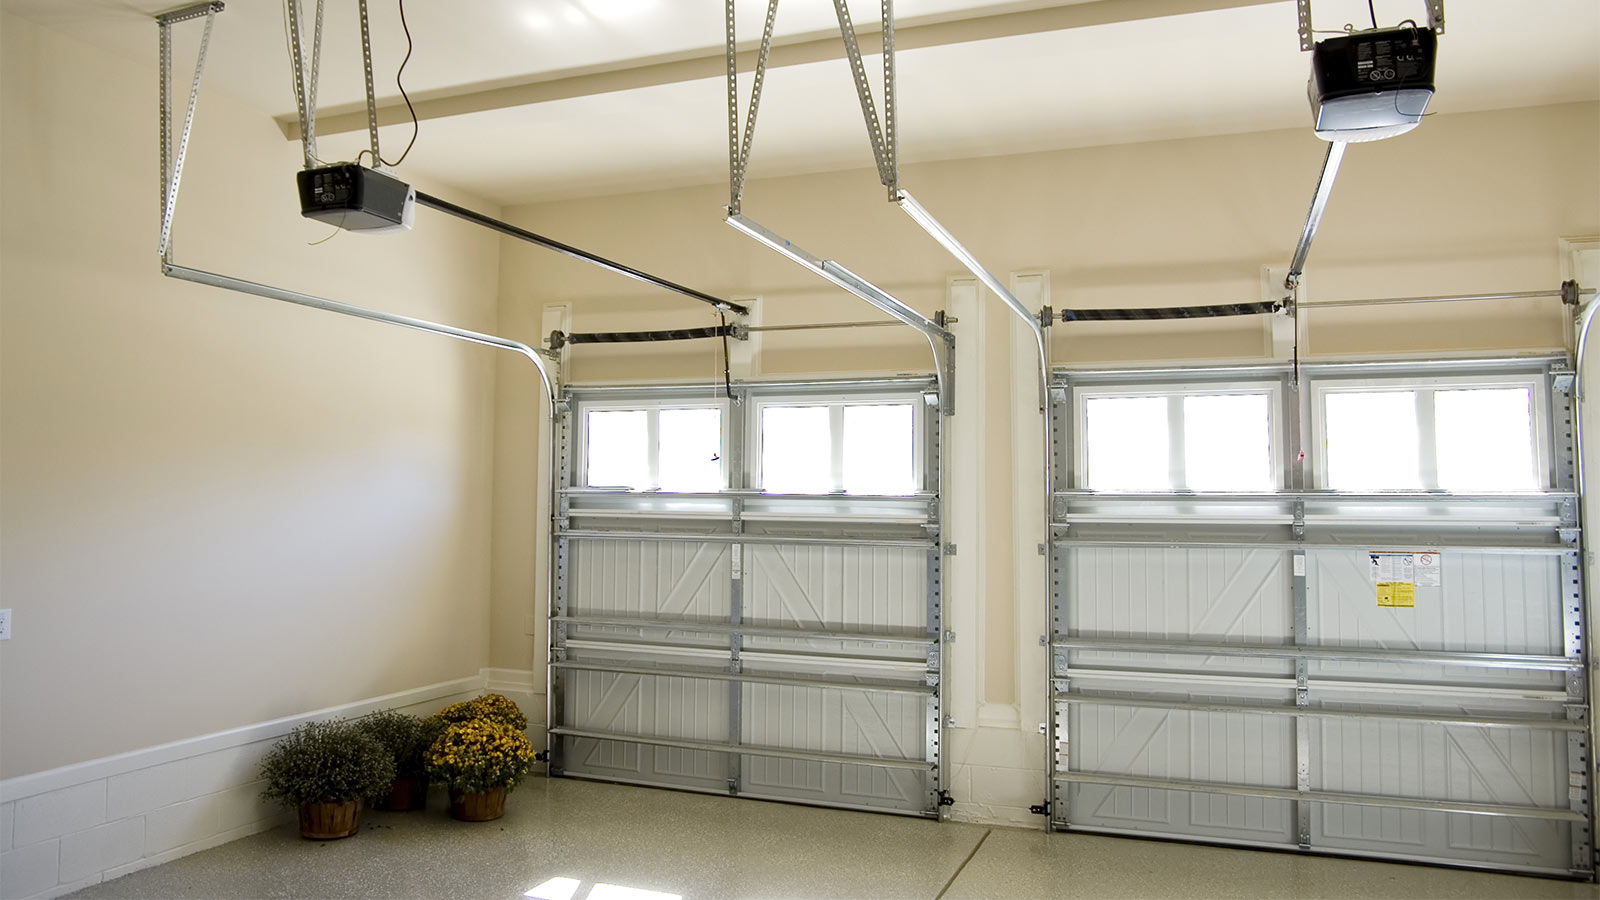 Sectional Garage Doors from Sectional Garage Doors Ipswich suppliers.